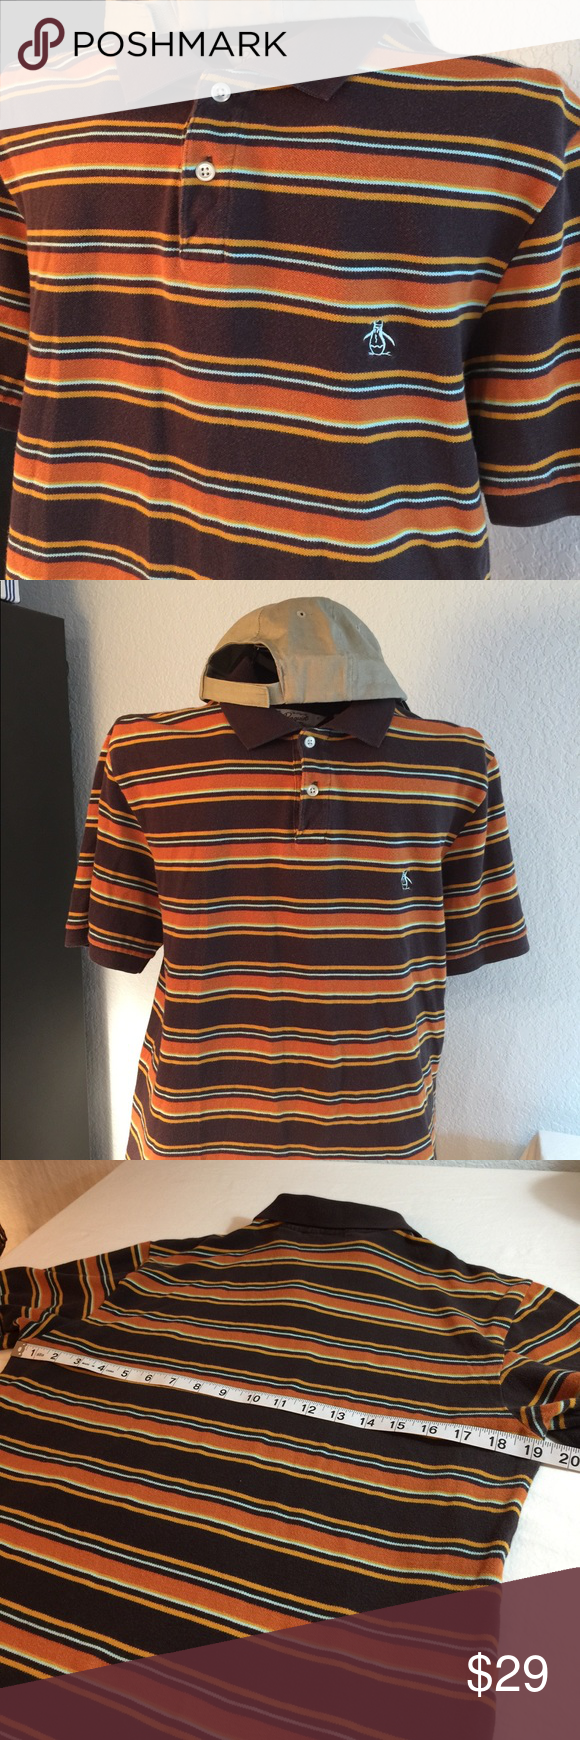 b948ca2d Men's vintage Penguin polo shirt,small, fall color Great classy vintage  shirt in dark